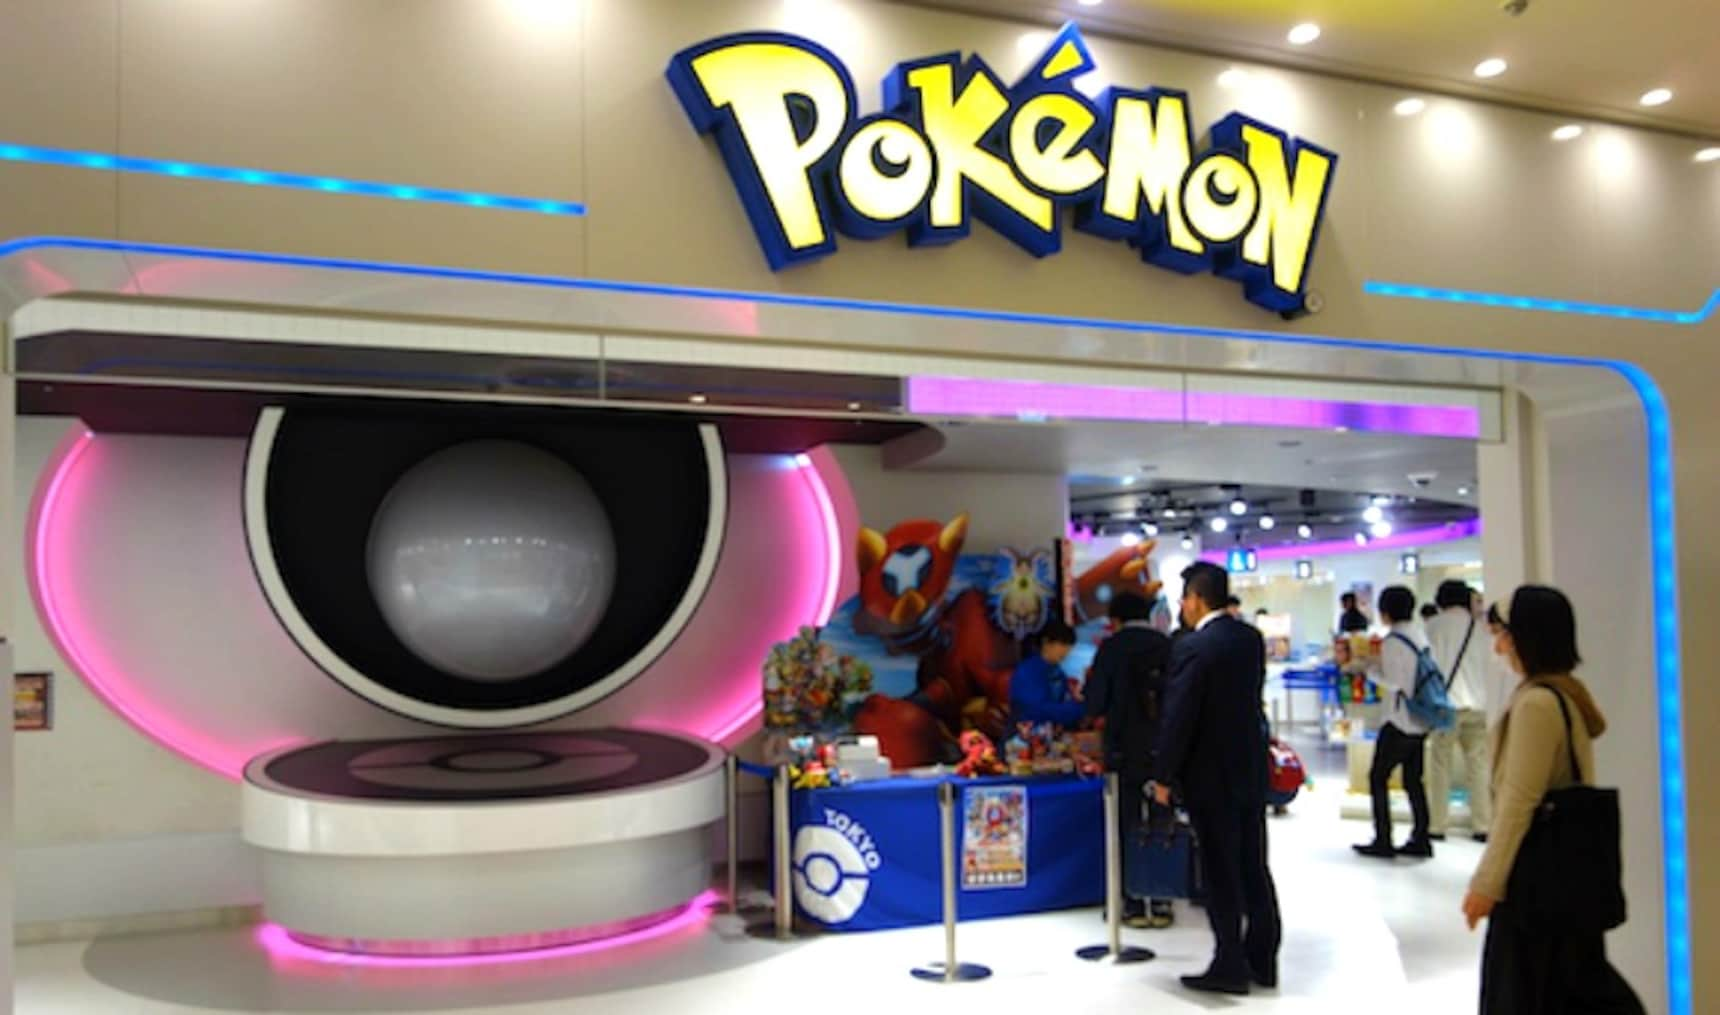 10 Things to Buy at This Tokyo Pokémon Center